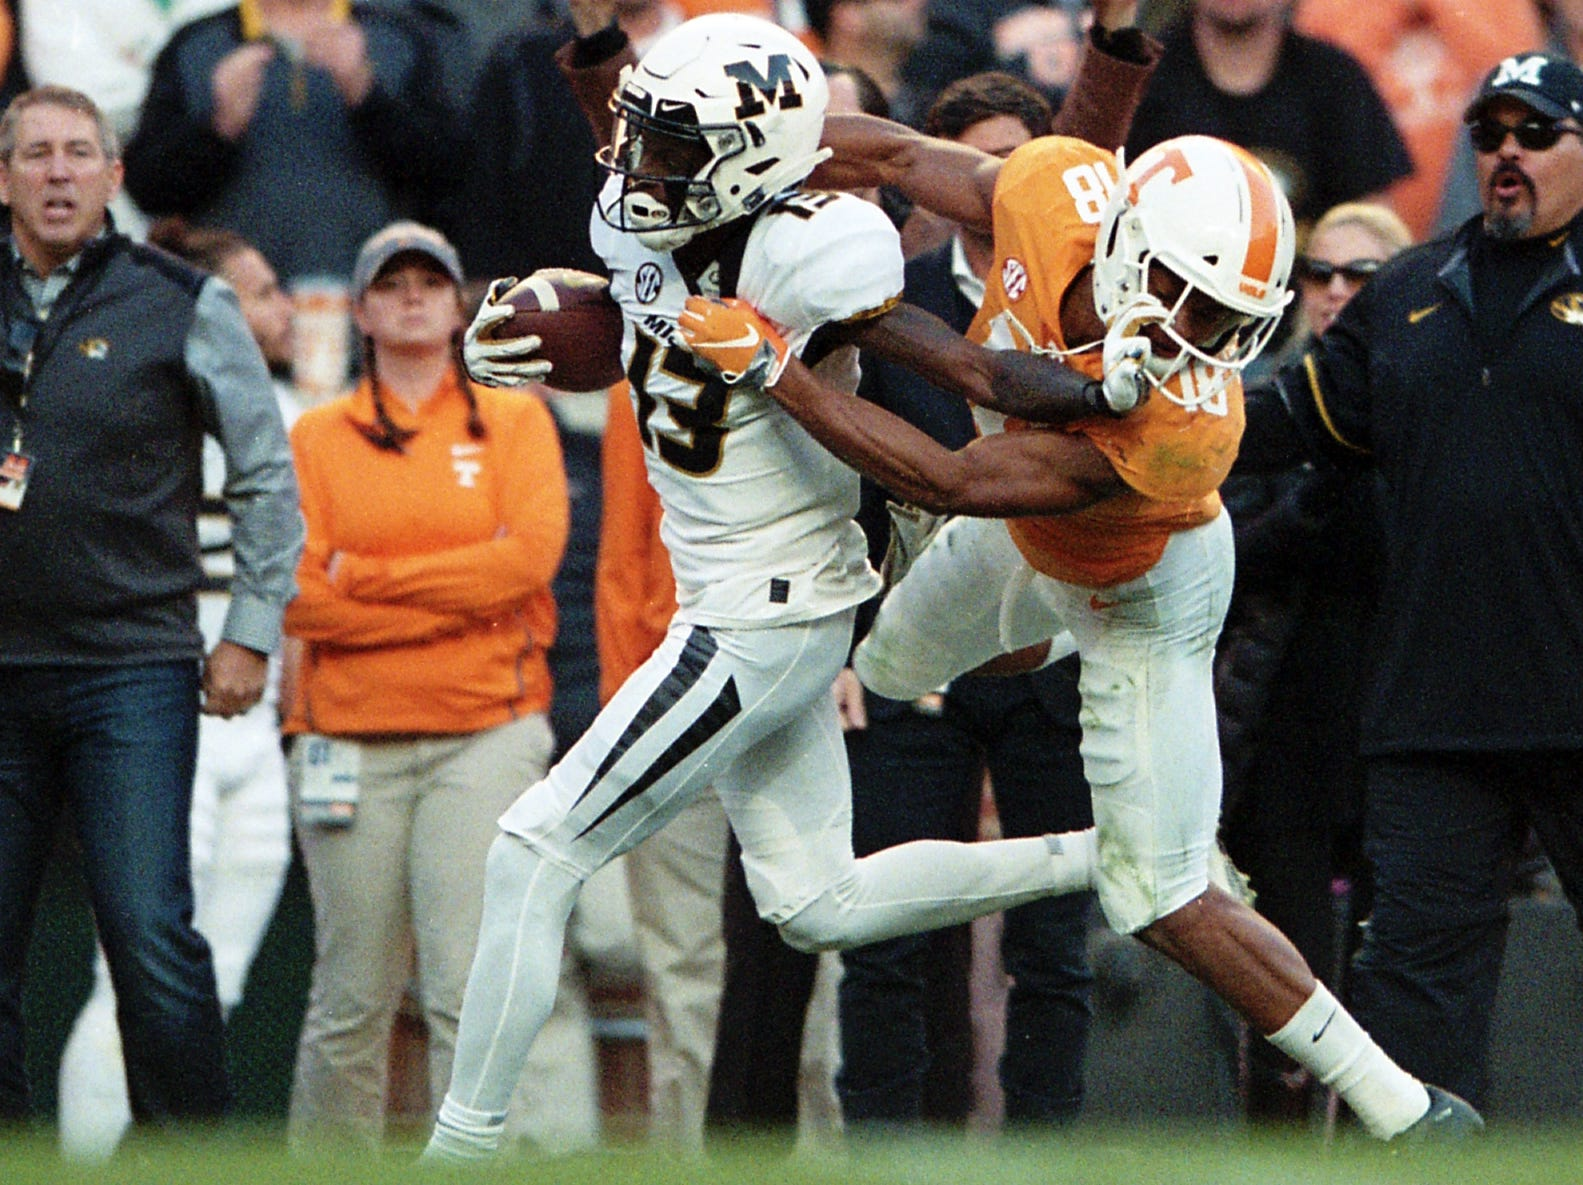 Tennessee defensive back Nigel Warrior (18) tries to tackle Missouri wide receiver Kam Scott (13) as he runs the ball down the sideline during a game between Tennessee and Missouri at Neyland Stadium in Knoxville, Tennessee on  Saturday, November 17, 2018.